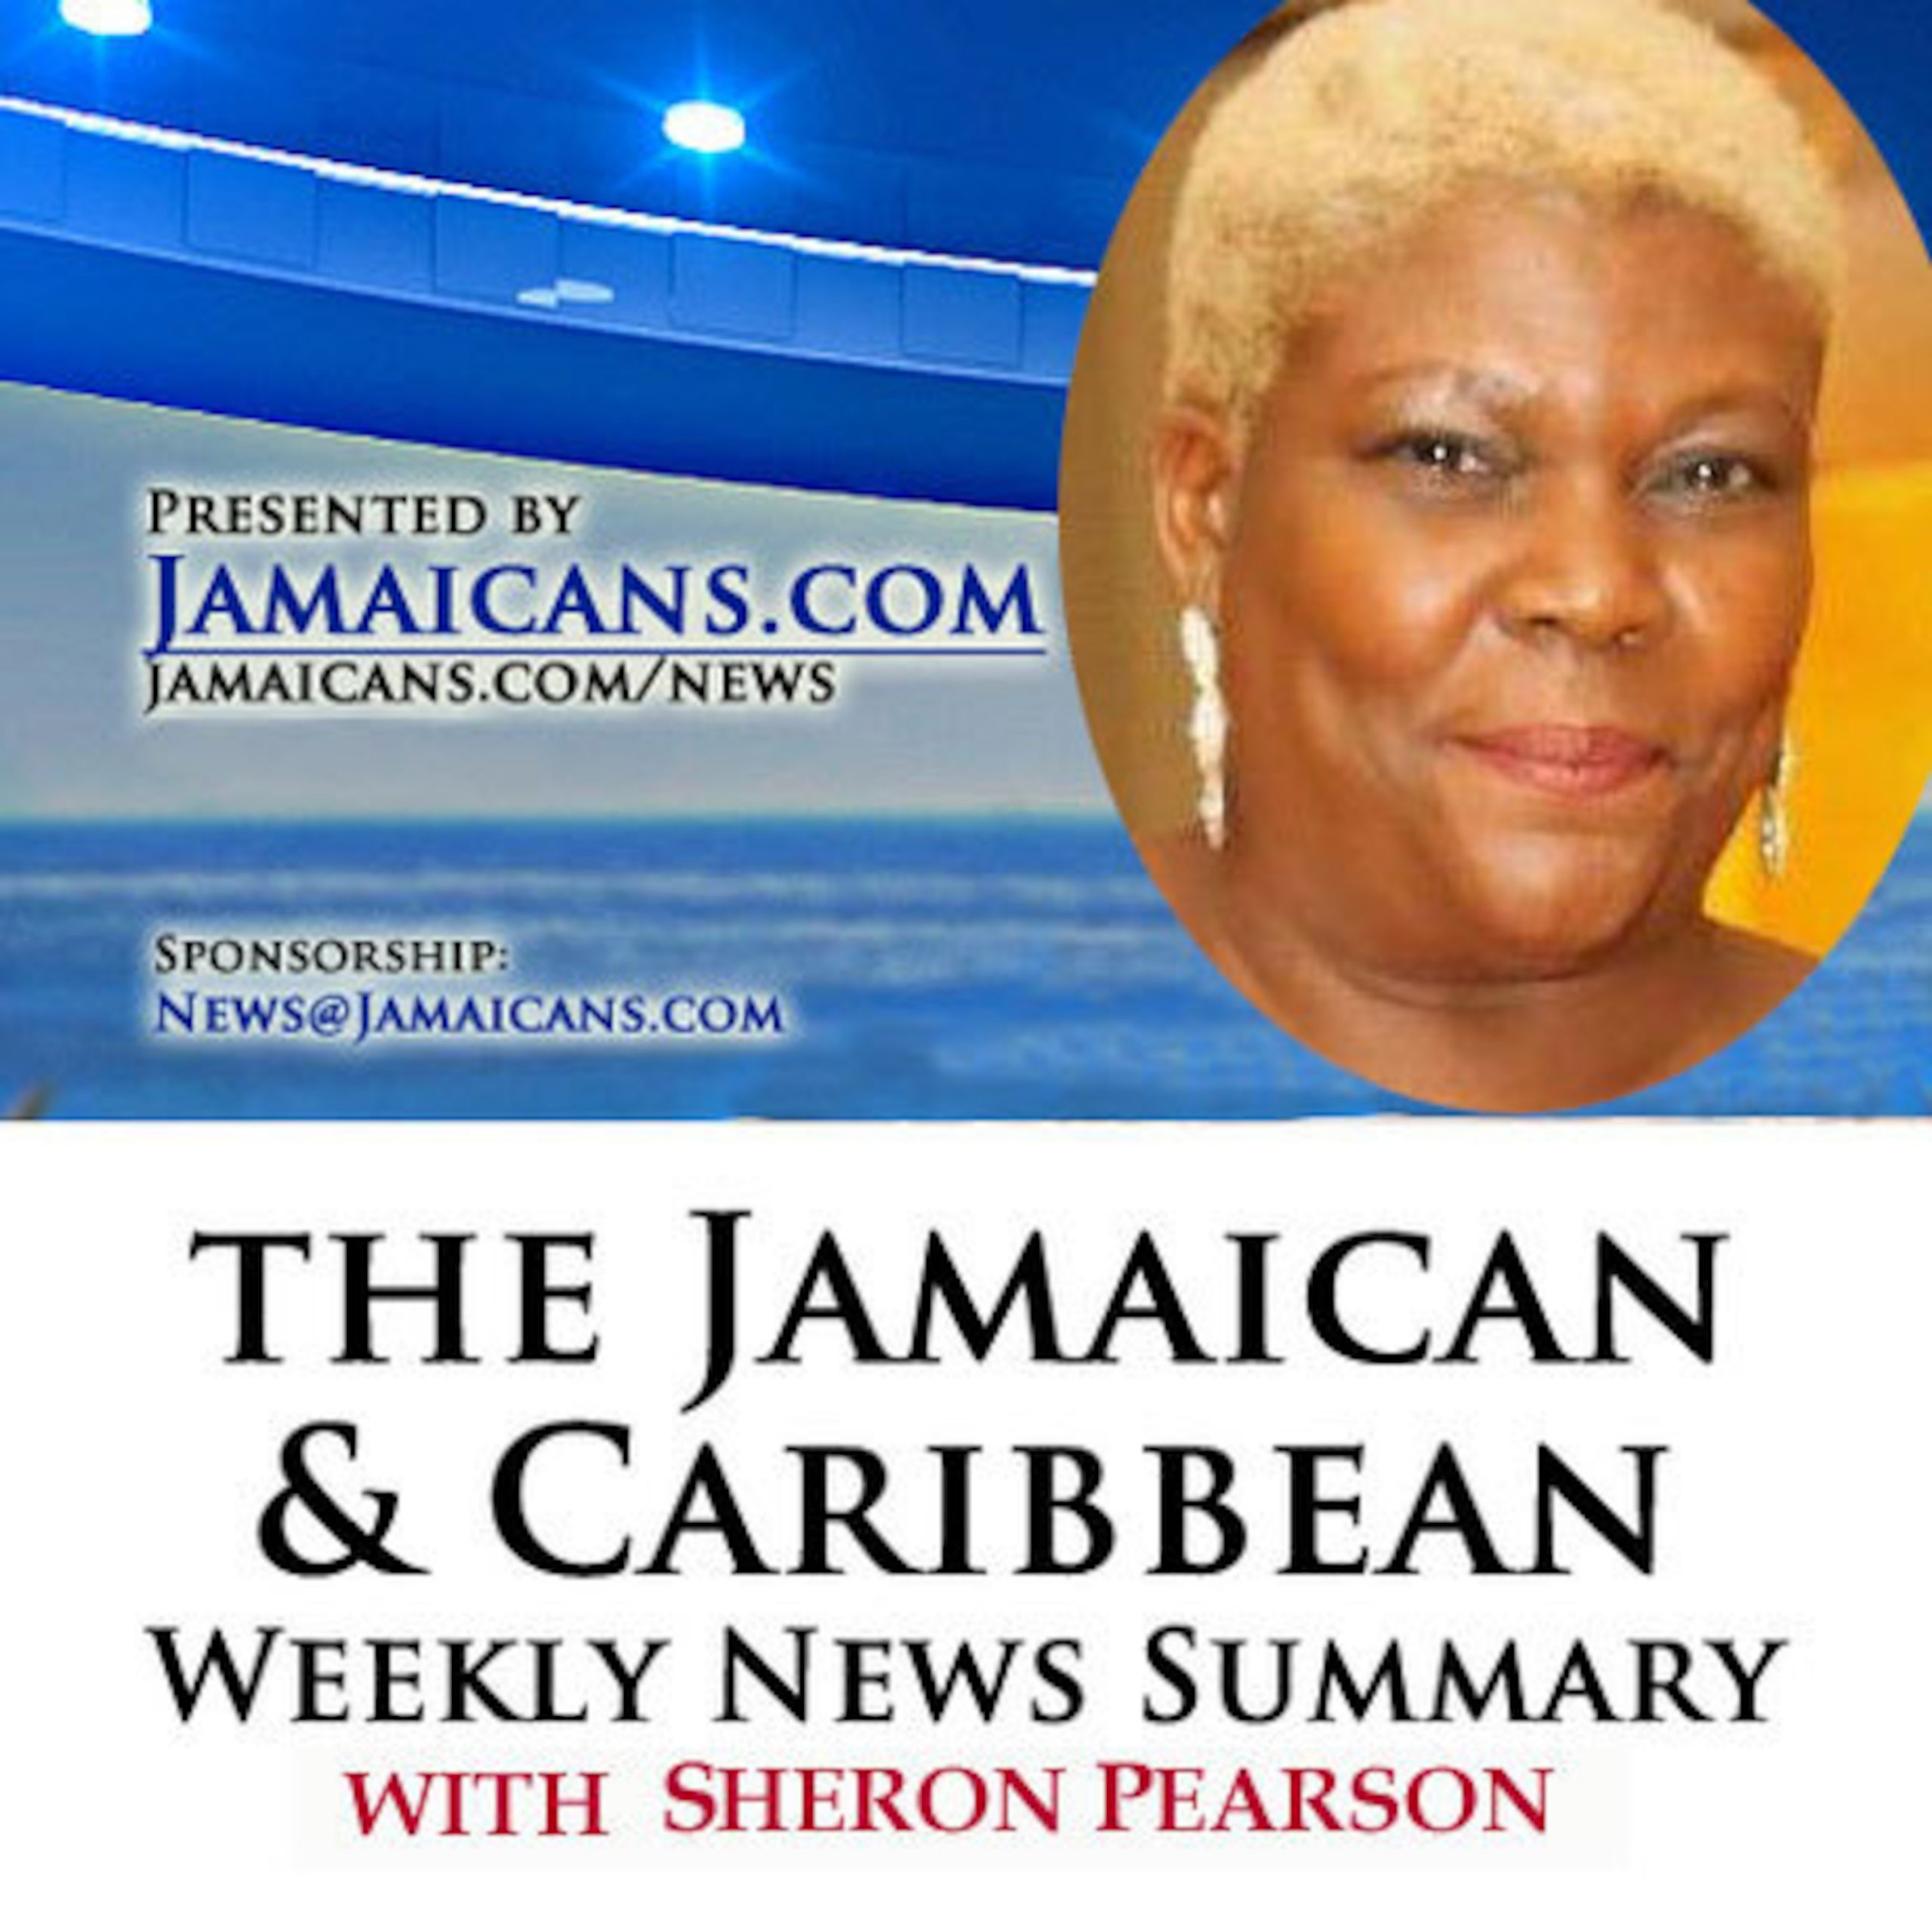 Listen to the Podcast of The Jamaica & Caribbean Weekly News Summary for the week ending February 14, 2020